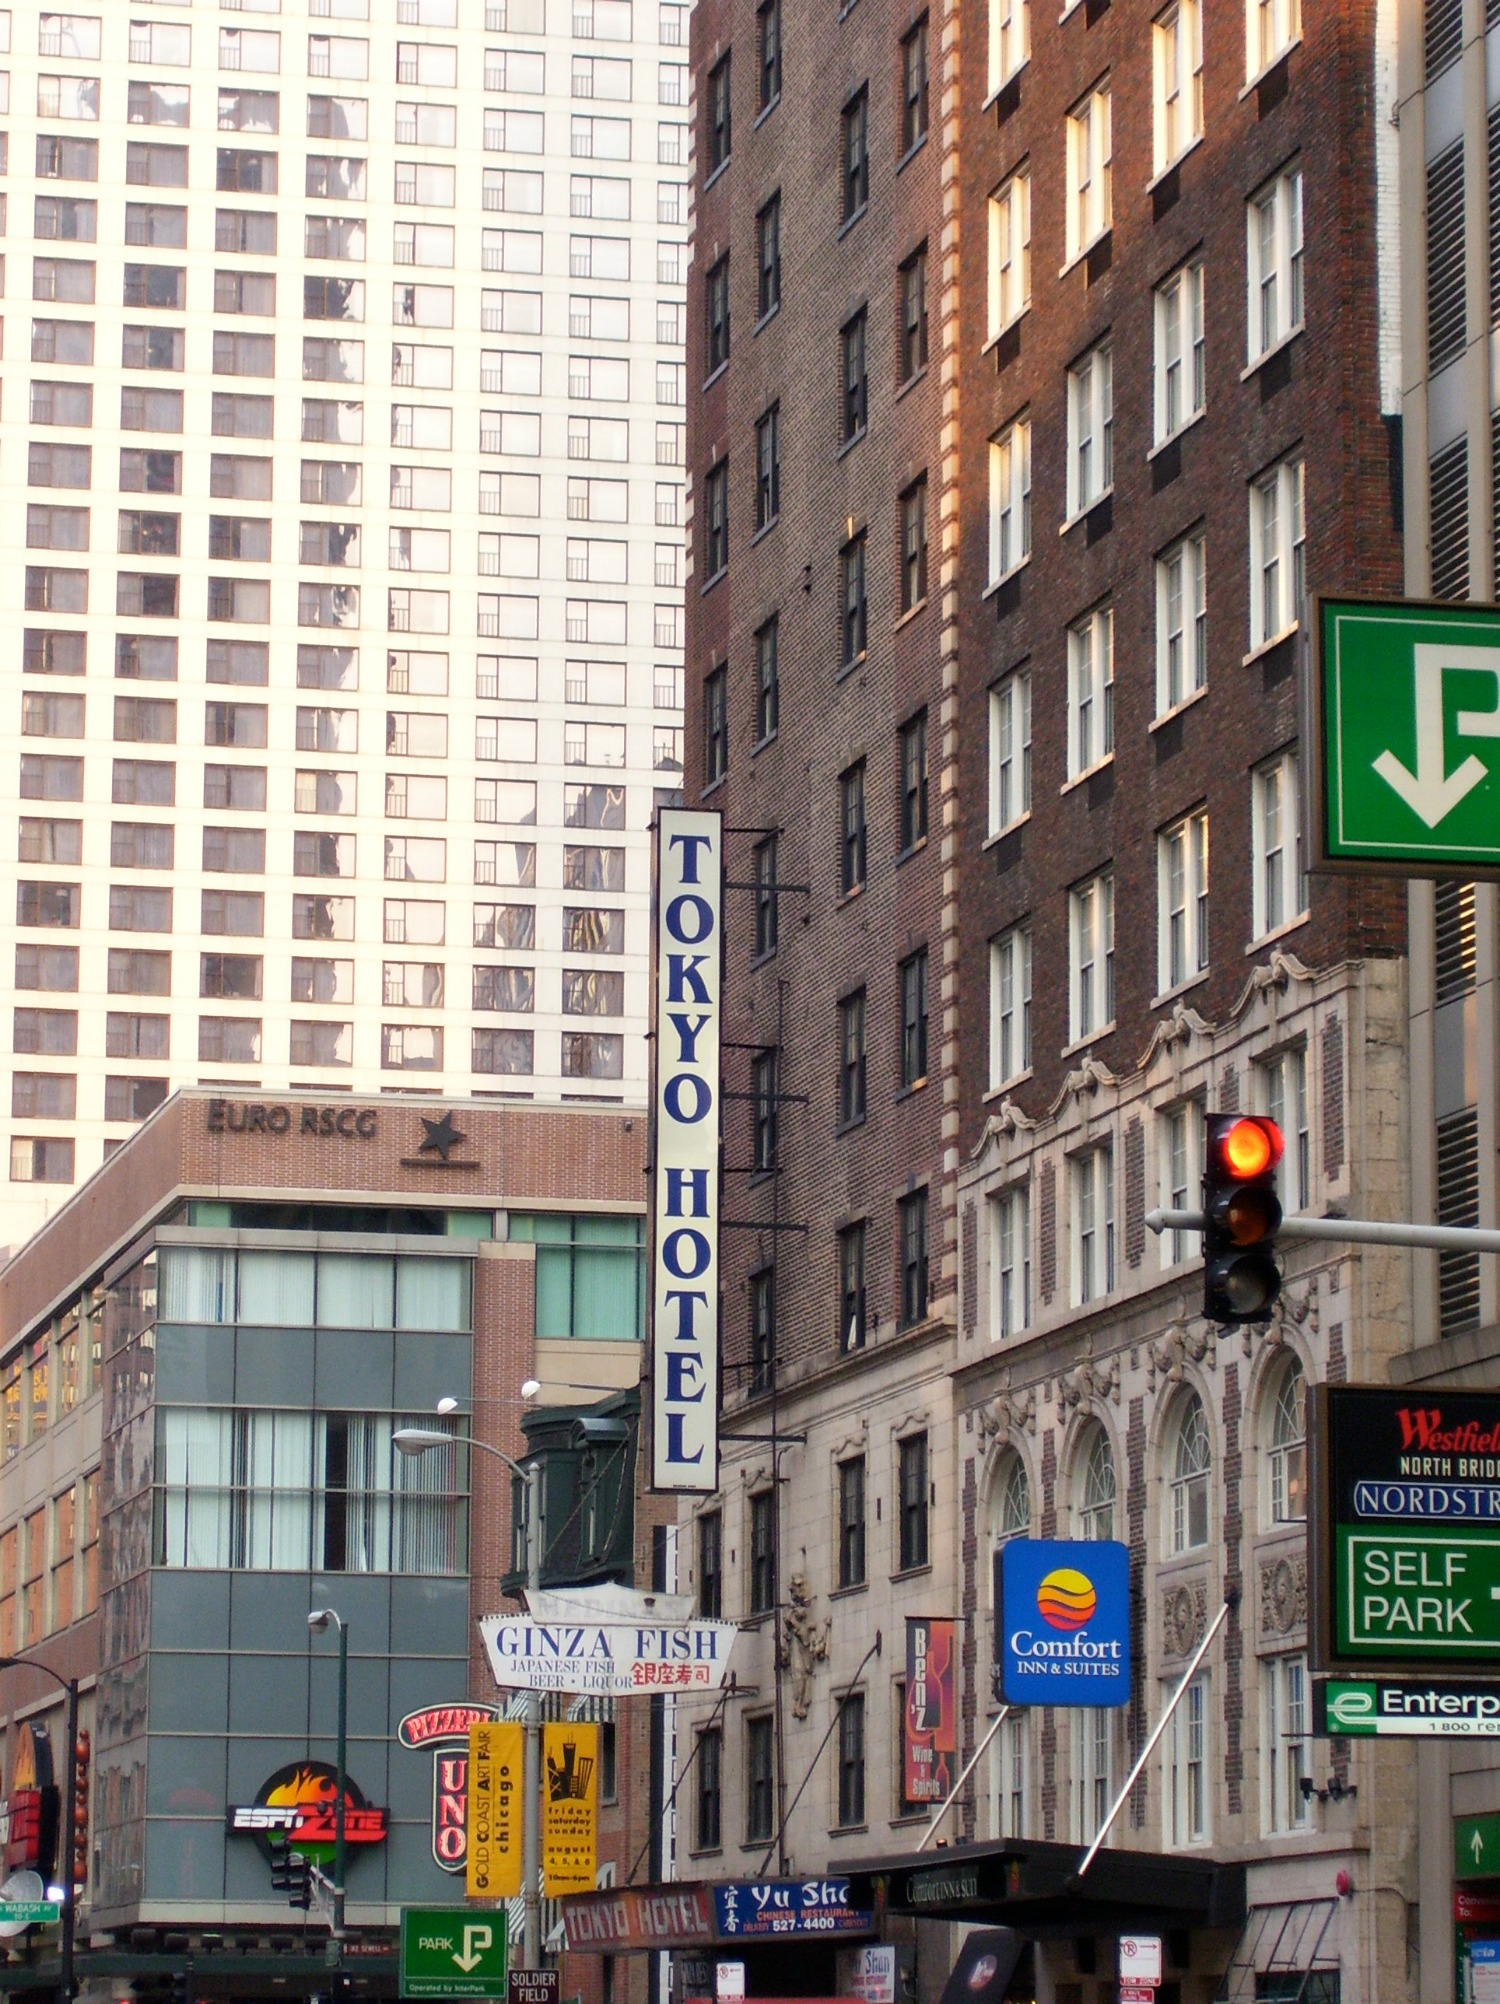 My Worst Hotel Experience - We Stayed in a Chicago Gangster Hotel